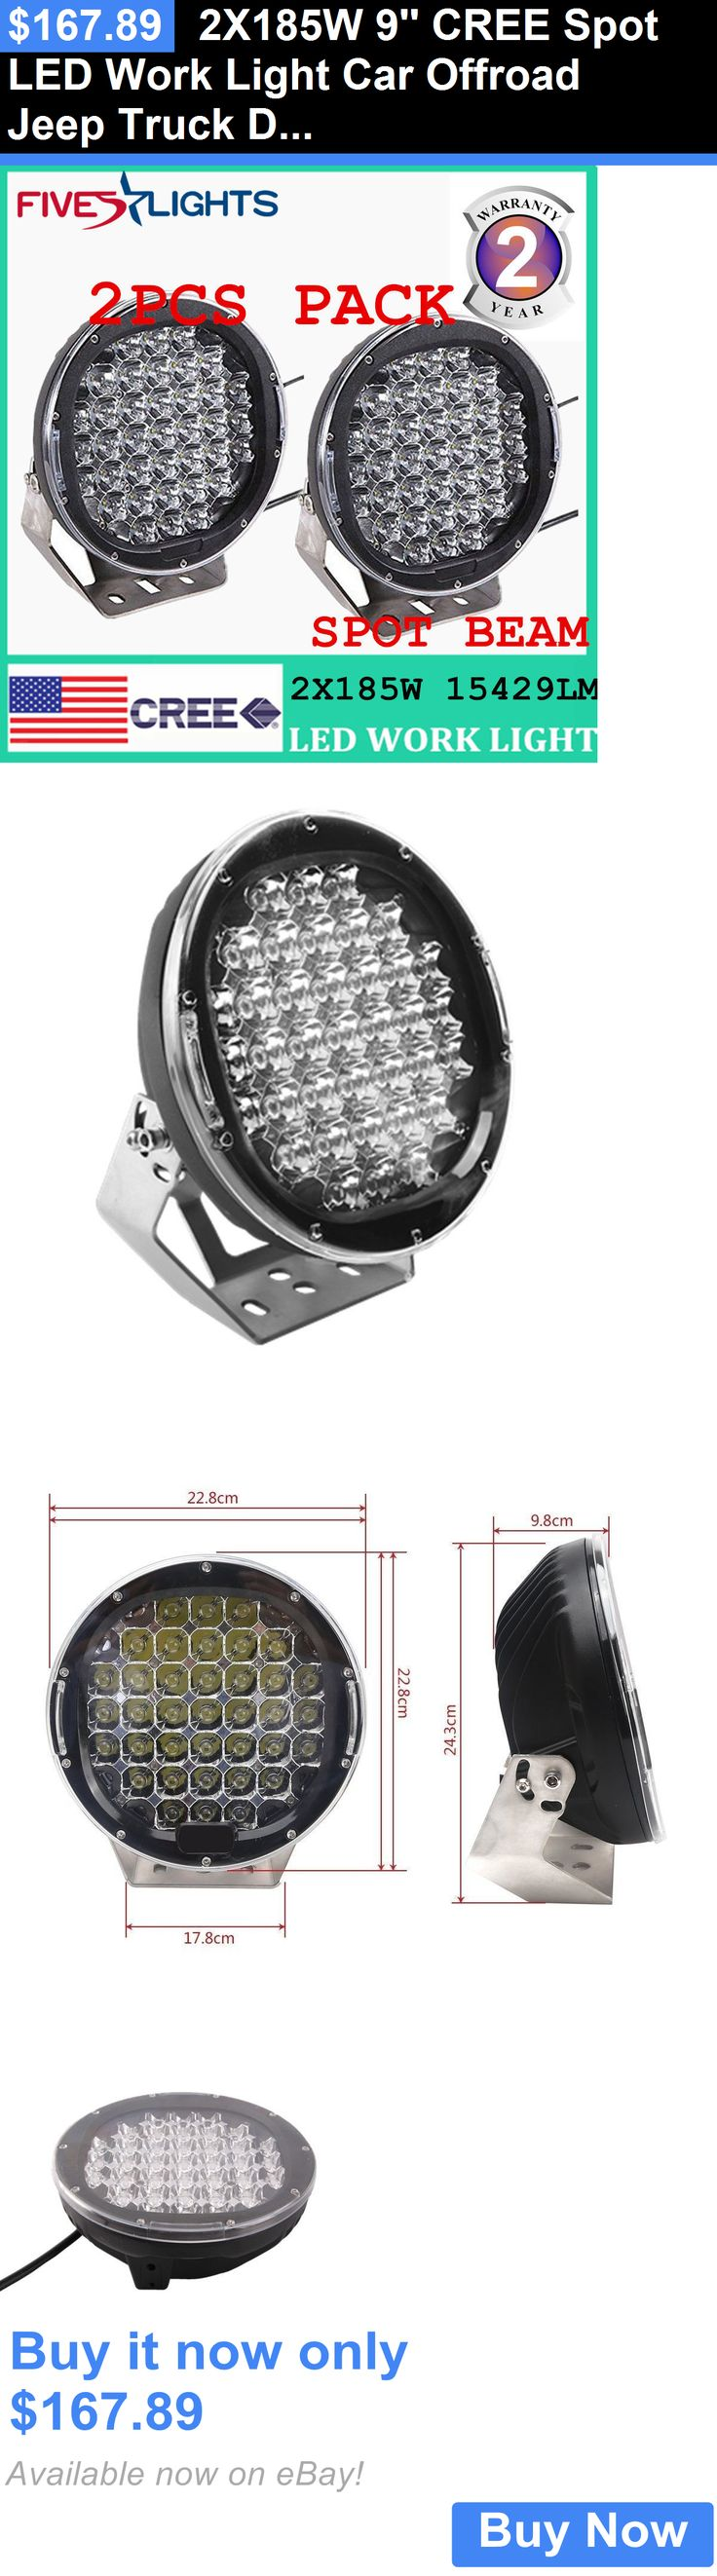 Motors Parts And Accessories: 2X185w 9 Cree Spot Led Work Light Car Offroad Jeep Truck Driving Lamp Black Us BUY IT NOW ONLY: $167.89